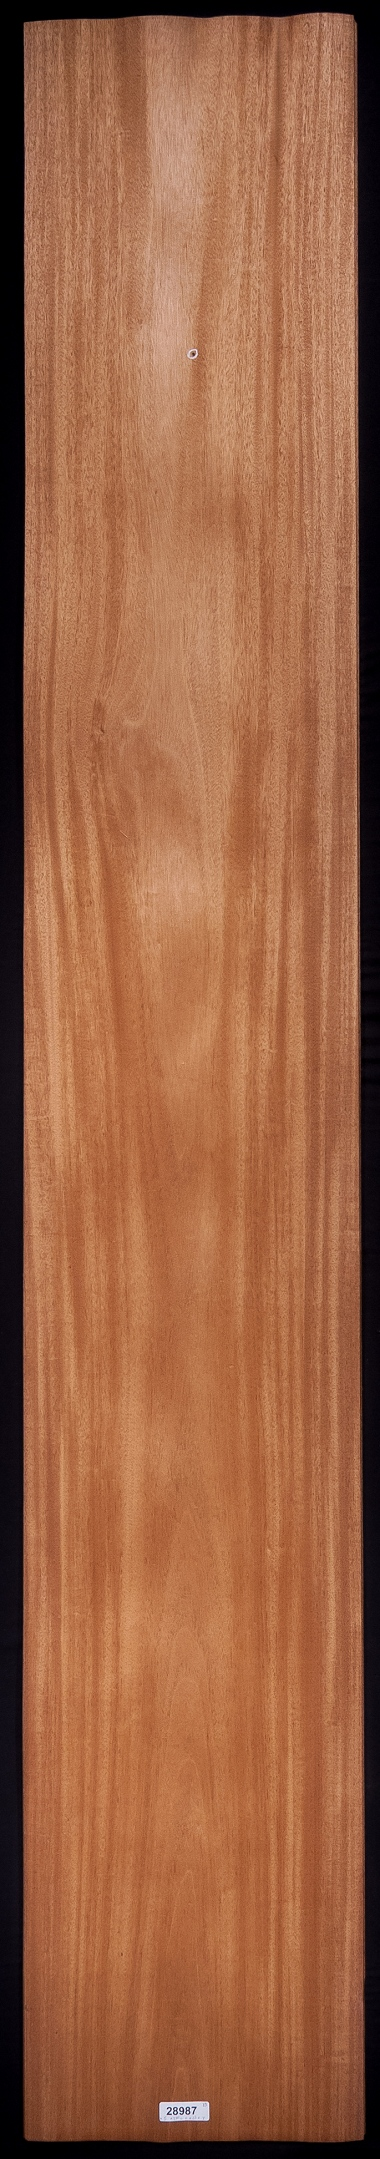 AAA Flat Cut Genuine Mahogany Veneer Sheet